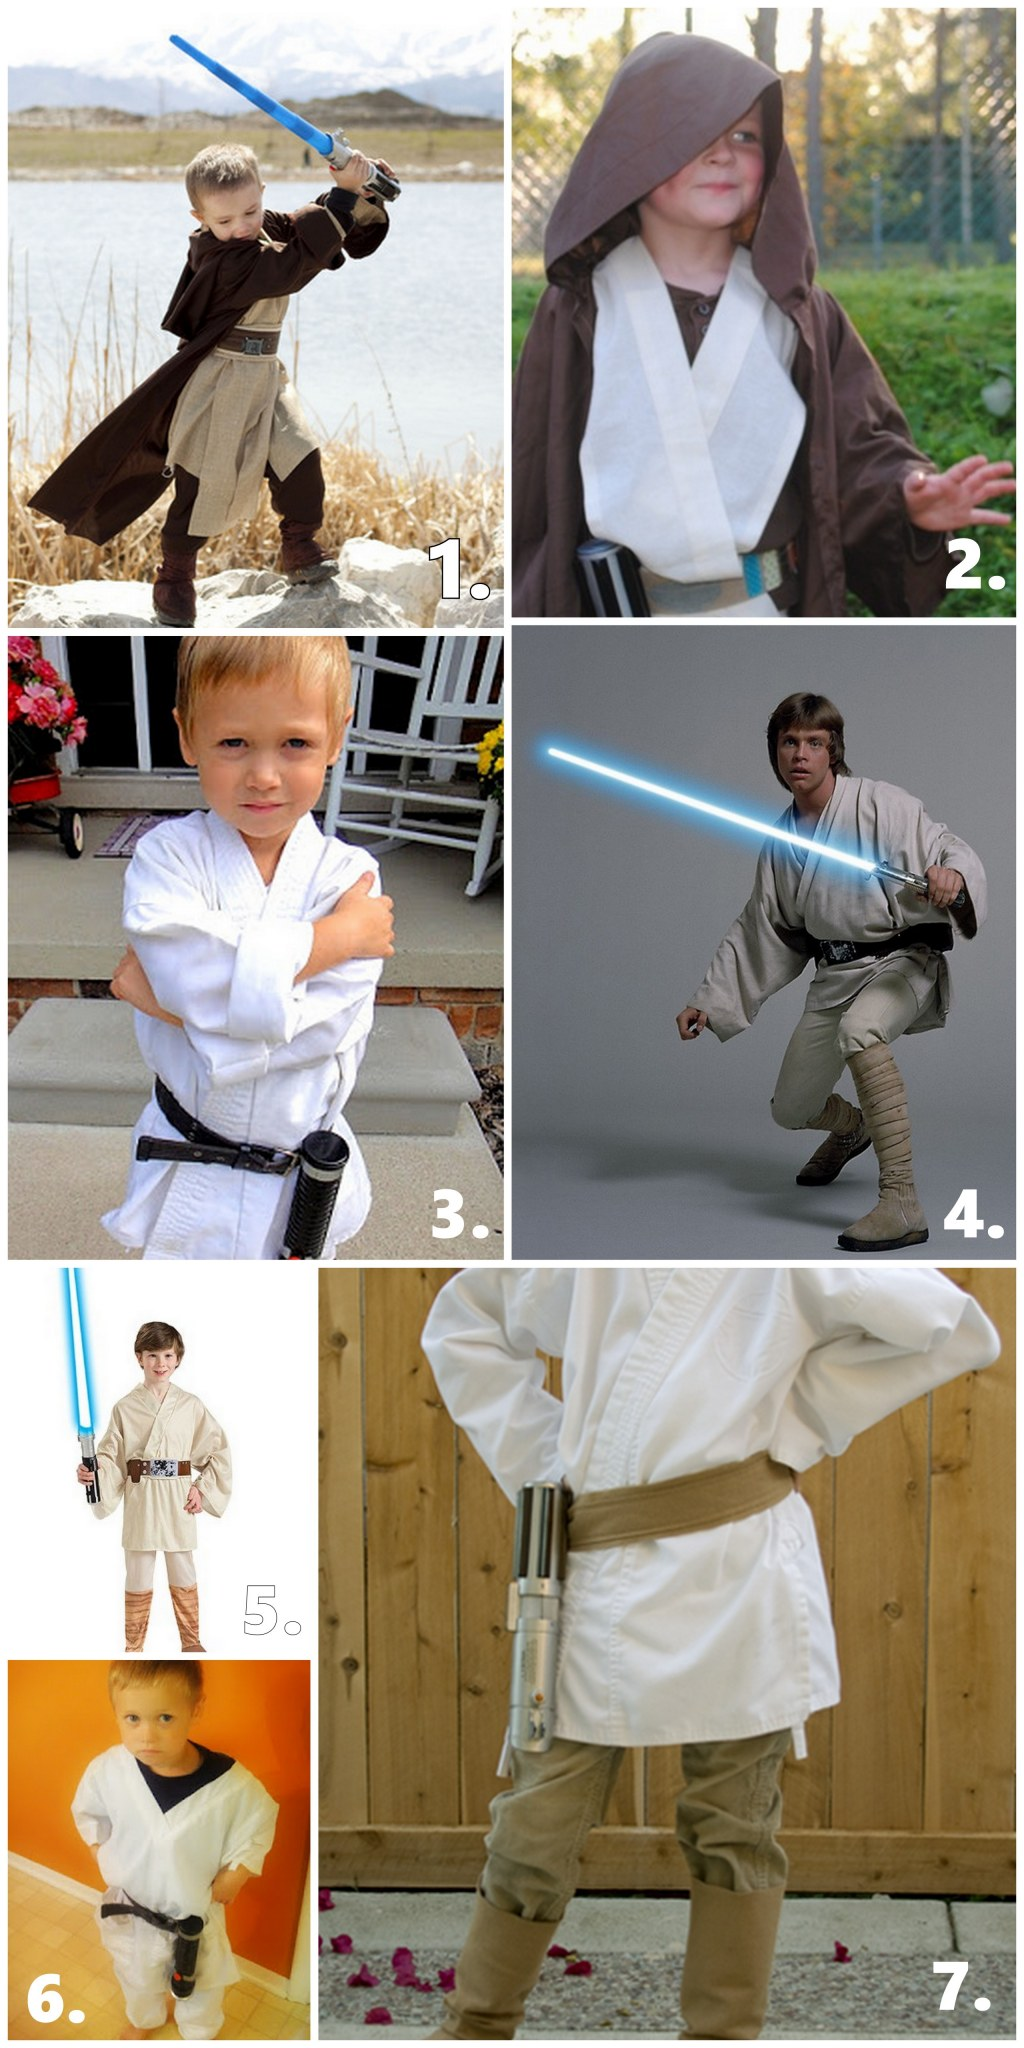 Star Wars fans - this DIY Princess Leia Costume is simple to make, inexpensive, and doesn't require any sewing!